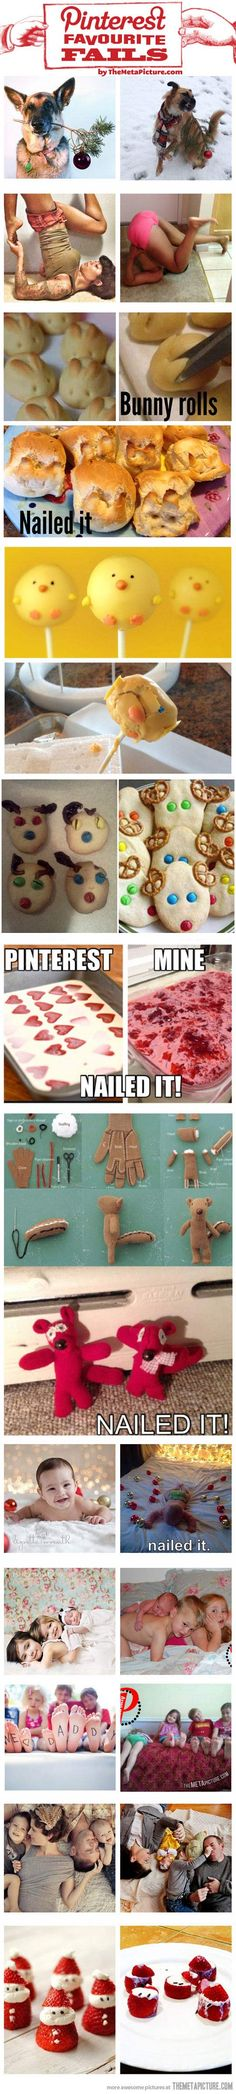 Pinterest Gone Wrong- nailed it! So funny and so true!!!! xD